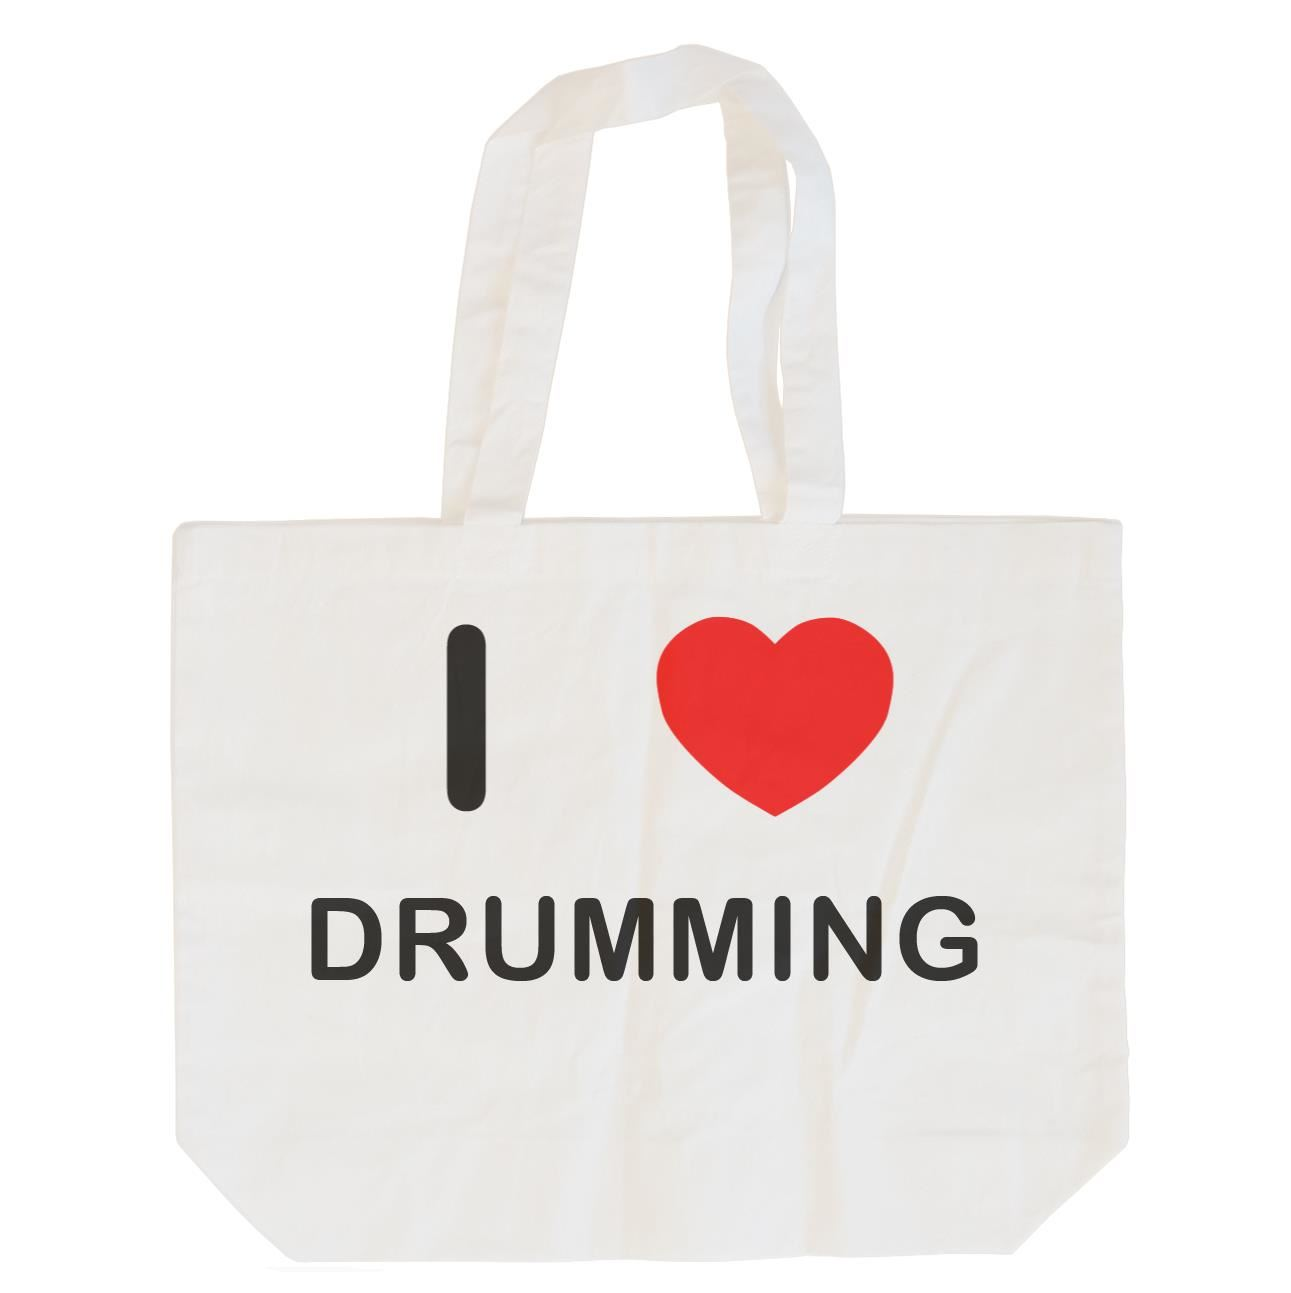 I Love Drumming - Cotton Bag | Size choice Tote, Shopper or Sling